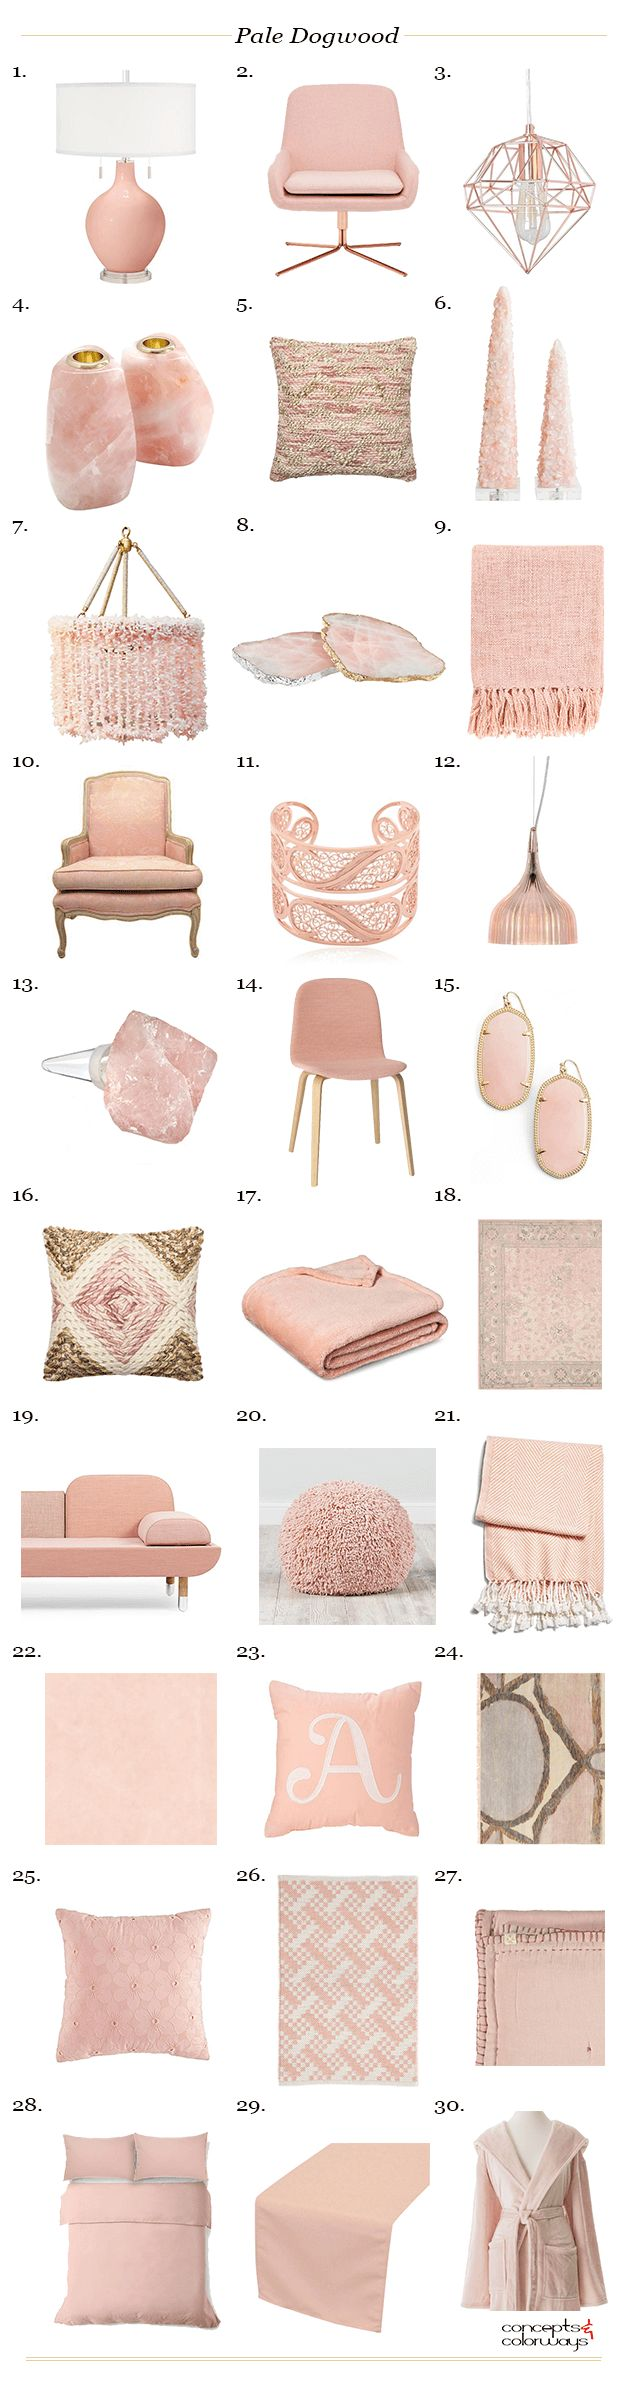 pantone pale dogwood interior design product roundup